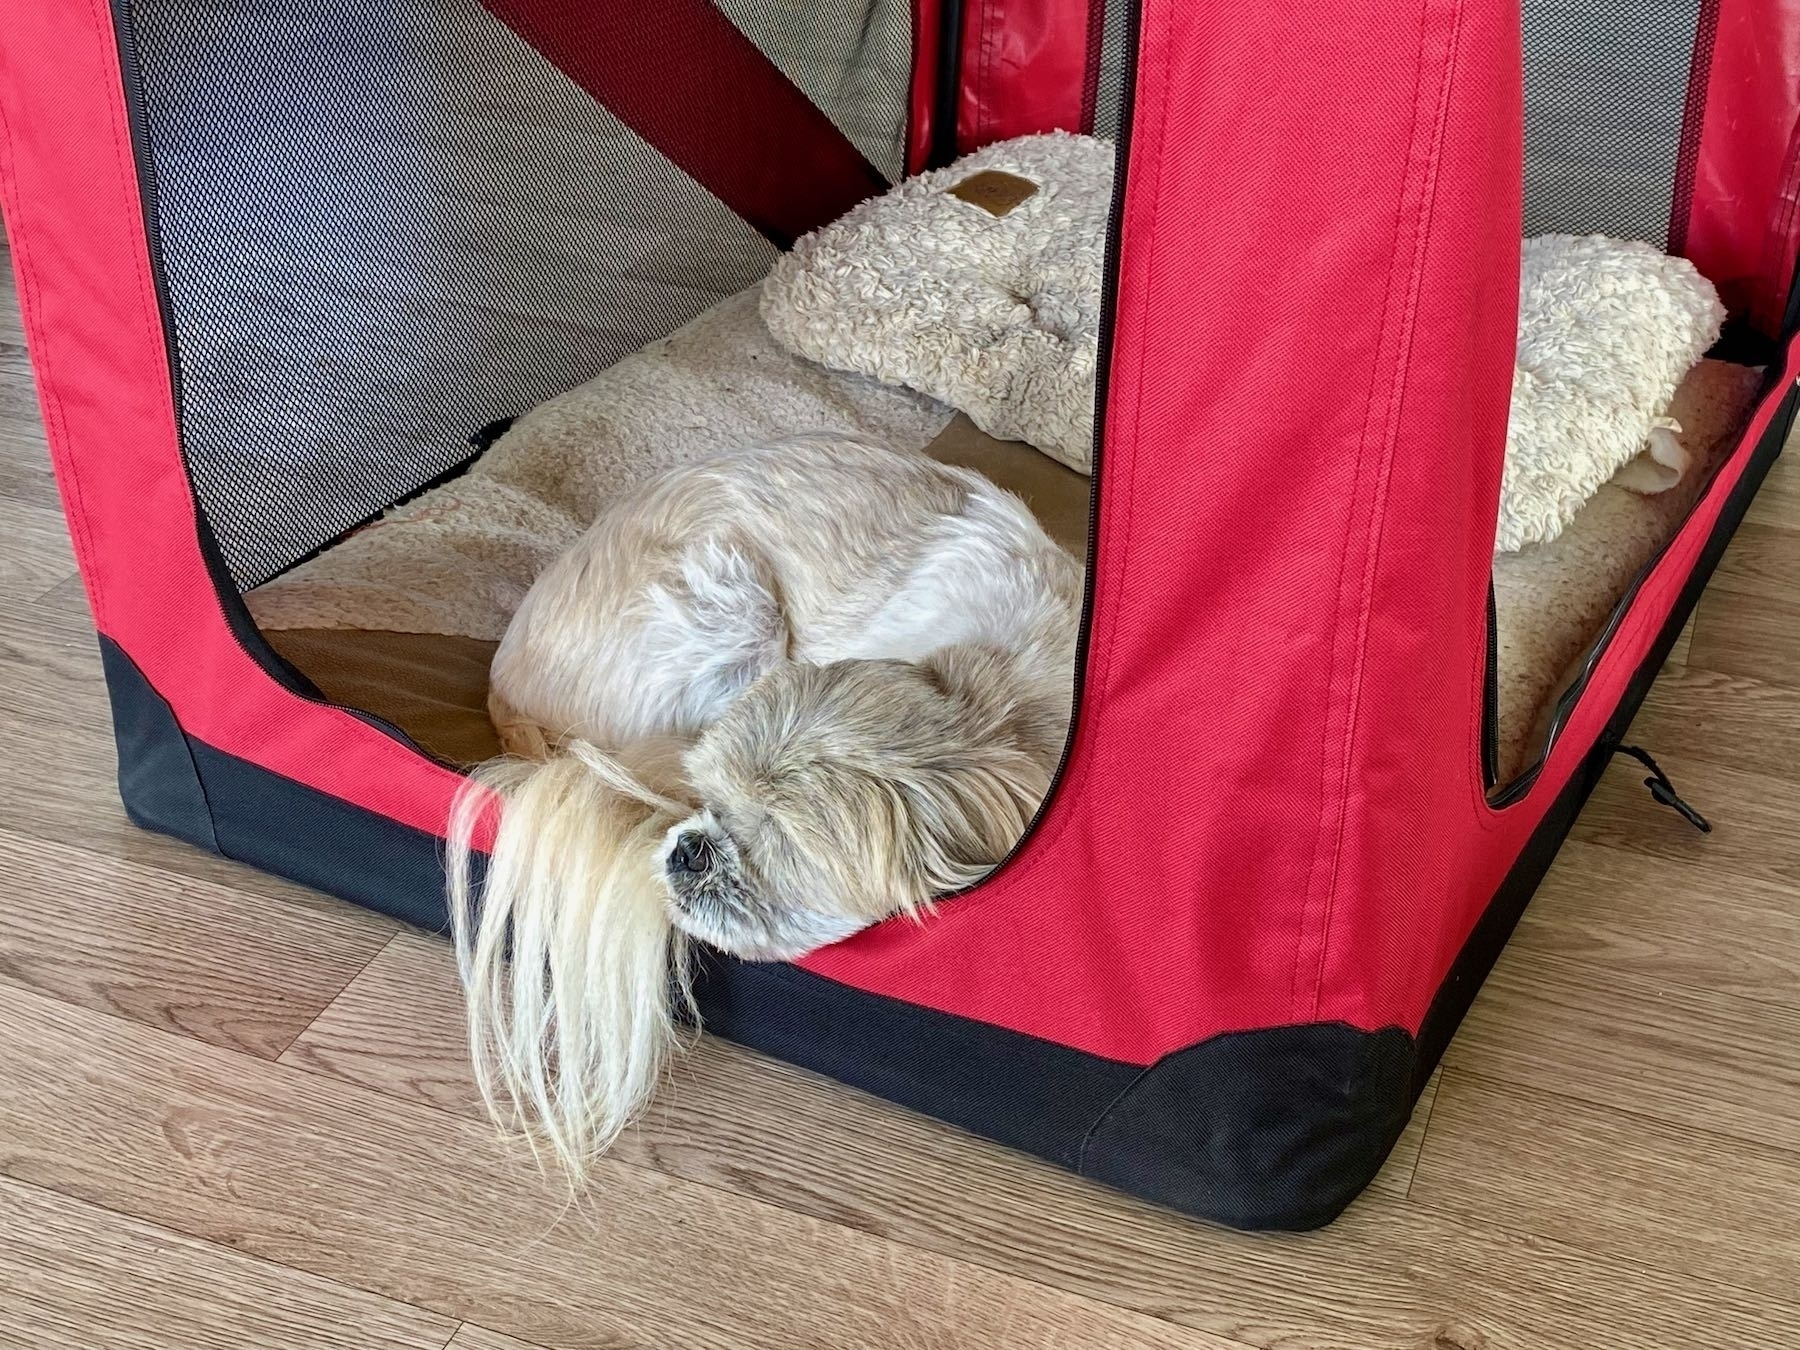 Small white dog sleeping in a soft crate.